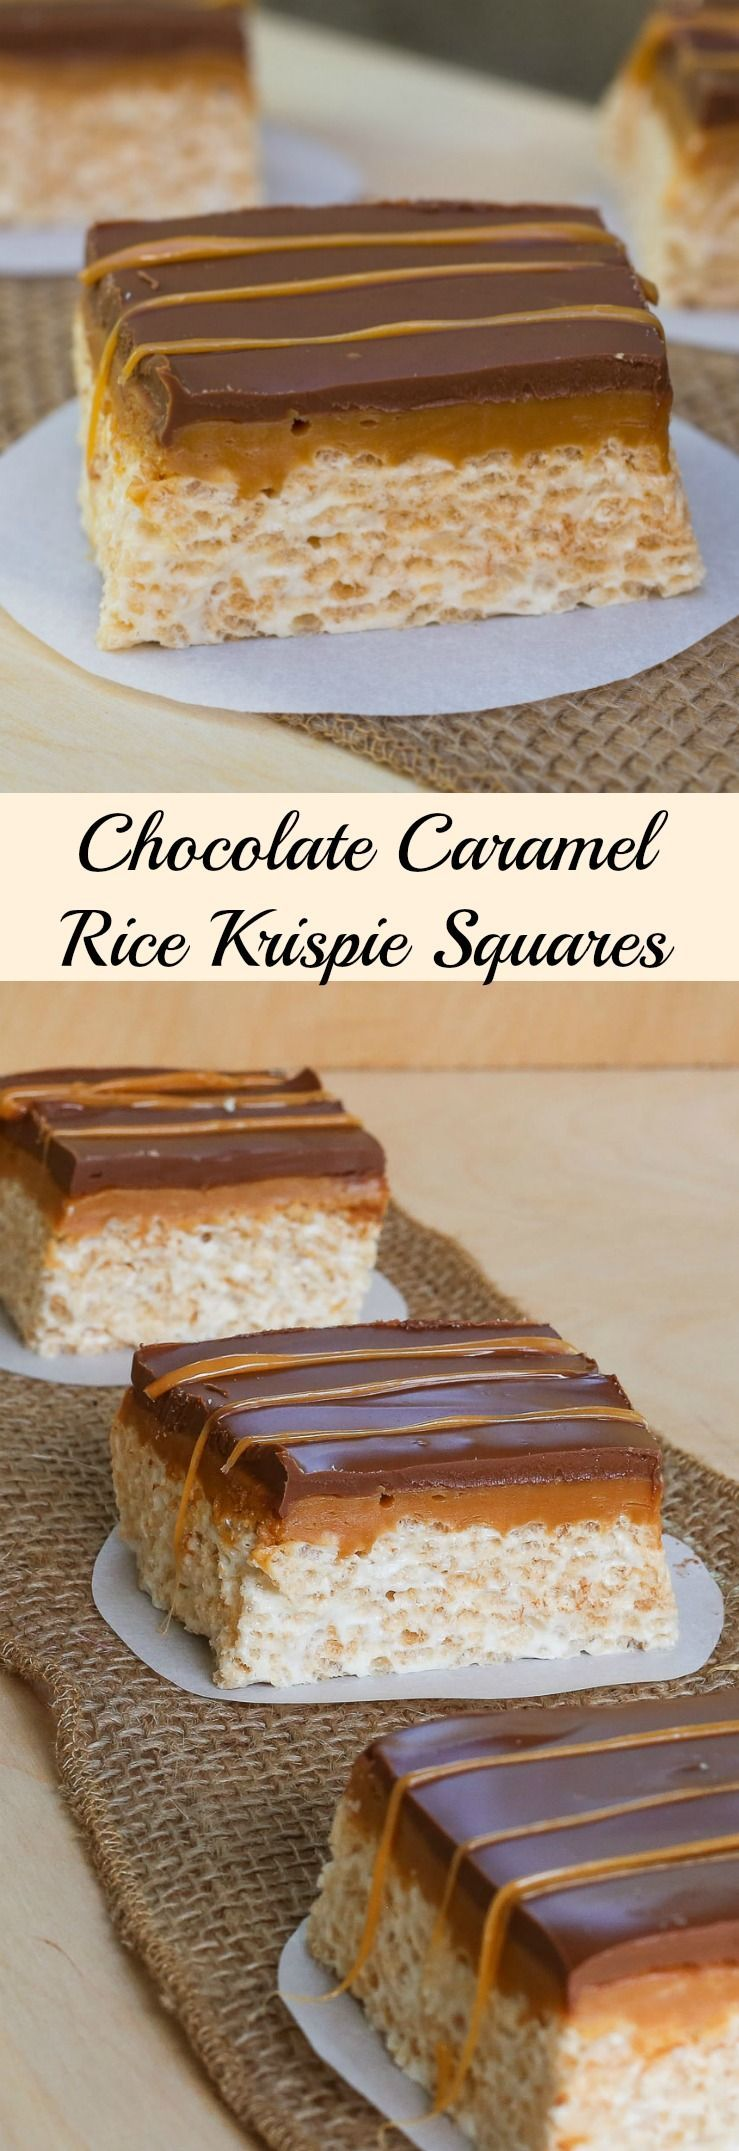 Caramel Rice Krispie Squares This recipe for Chocolate Caramel Rice Krispie Squares takes an old time favorite to a whole new level. Rice Krispie squares with peanut butter, a gooey caramel layer, then topped with chocolate!This recipe for Chocolate Caramel Rice Krispie Squares takes an old time favorite to a whole new level. Rice Krispie squares with peanut bu...